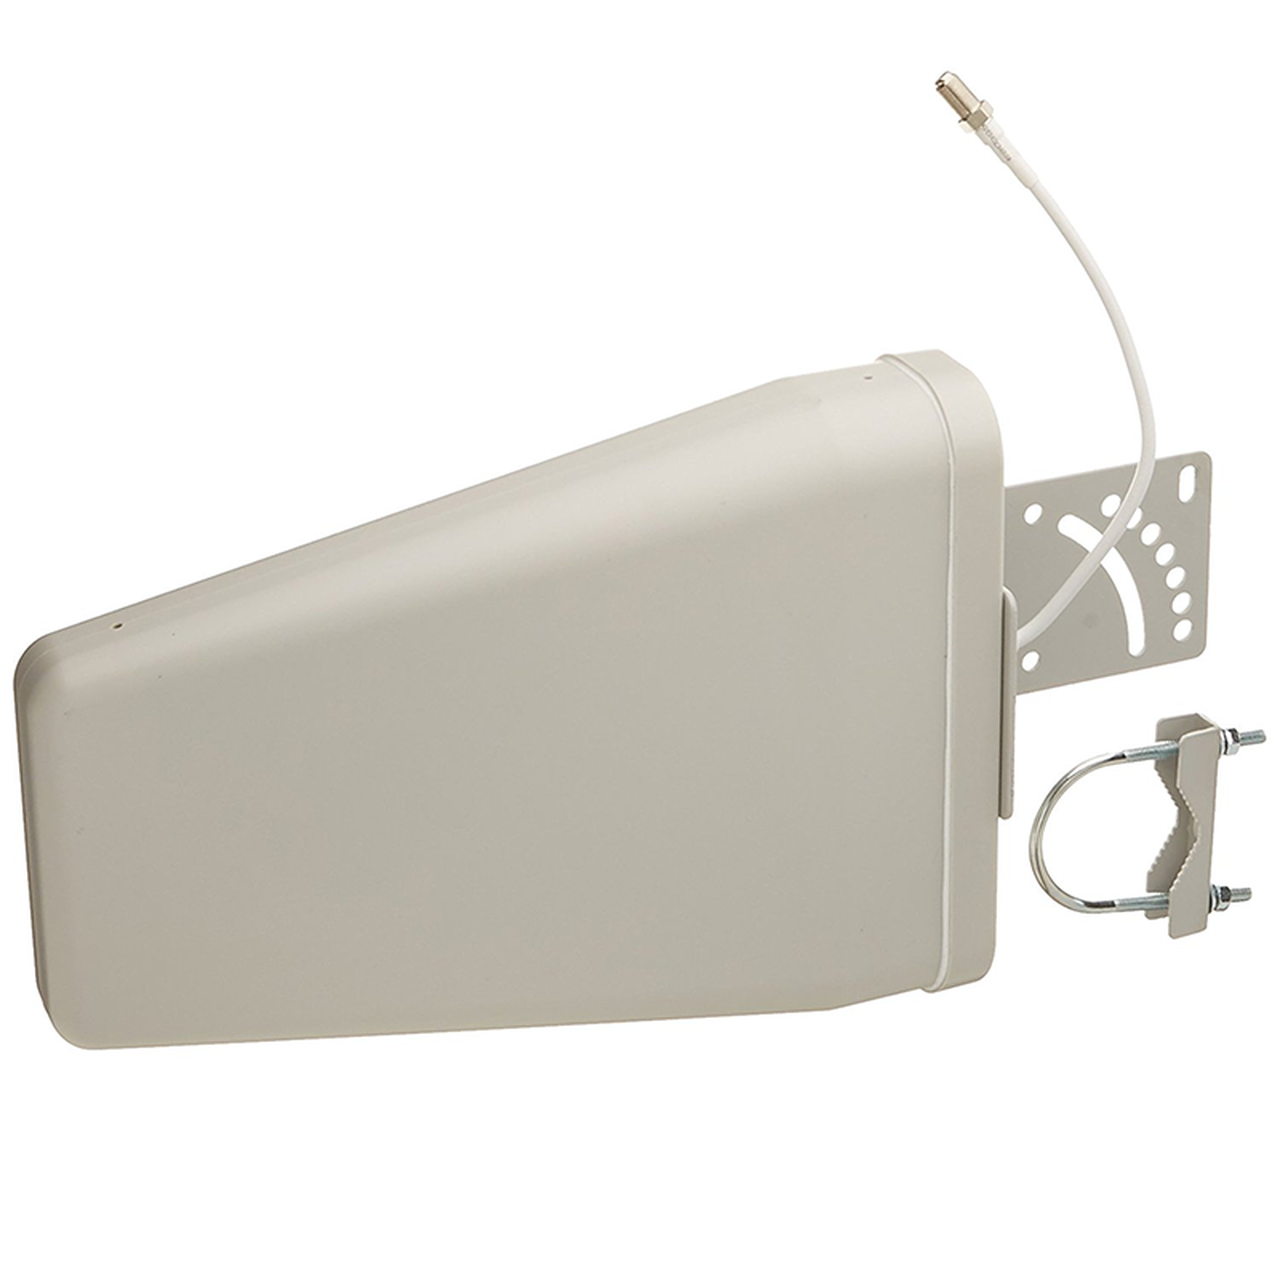 https://assets.wilsonelectronics.com/m/11c01df455c7c0fb/original/wide-band-directional-antenna-75-ohm-314475.png